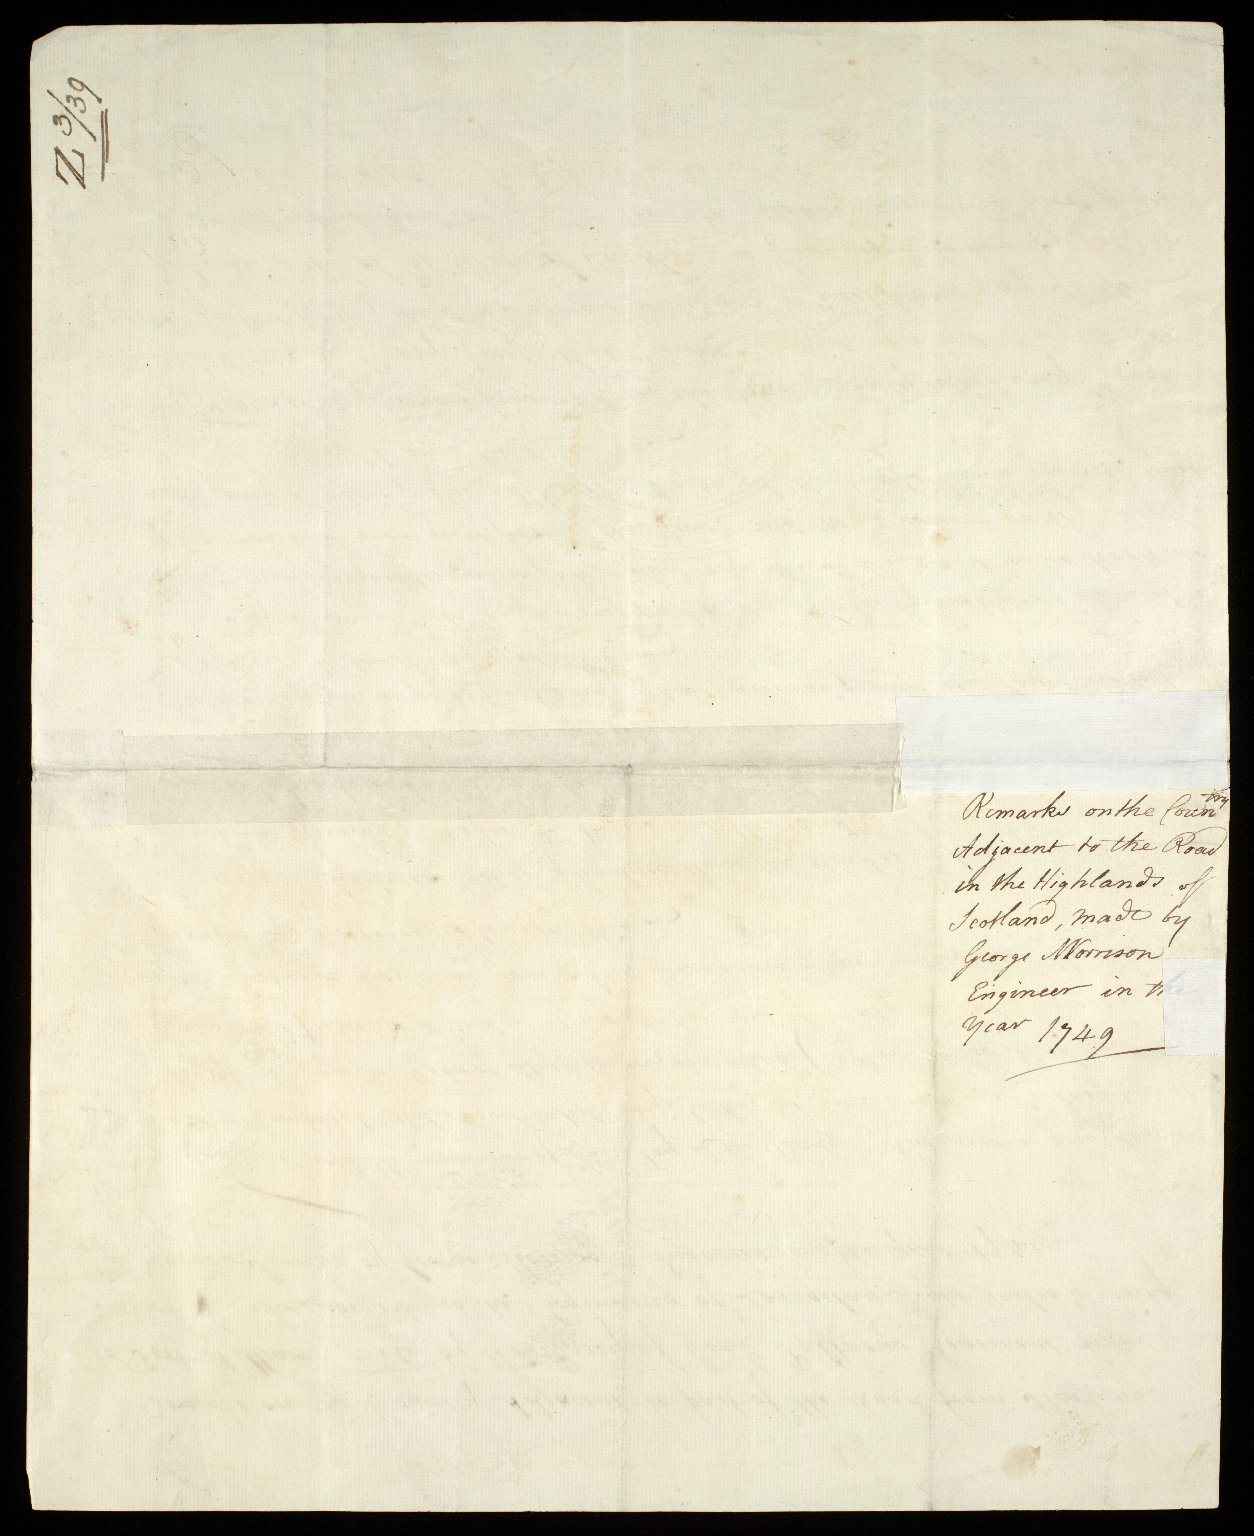 Remarks on the Country Adjacent to part of the Road from Sterling to Fort William, made by the Party of Genl. Pultneys Regement, from part of Loch Lubinich to the beginning of Larigilay. Eight Miles and Forty five Yards [2 of 2]